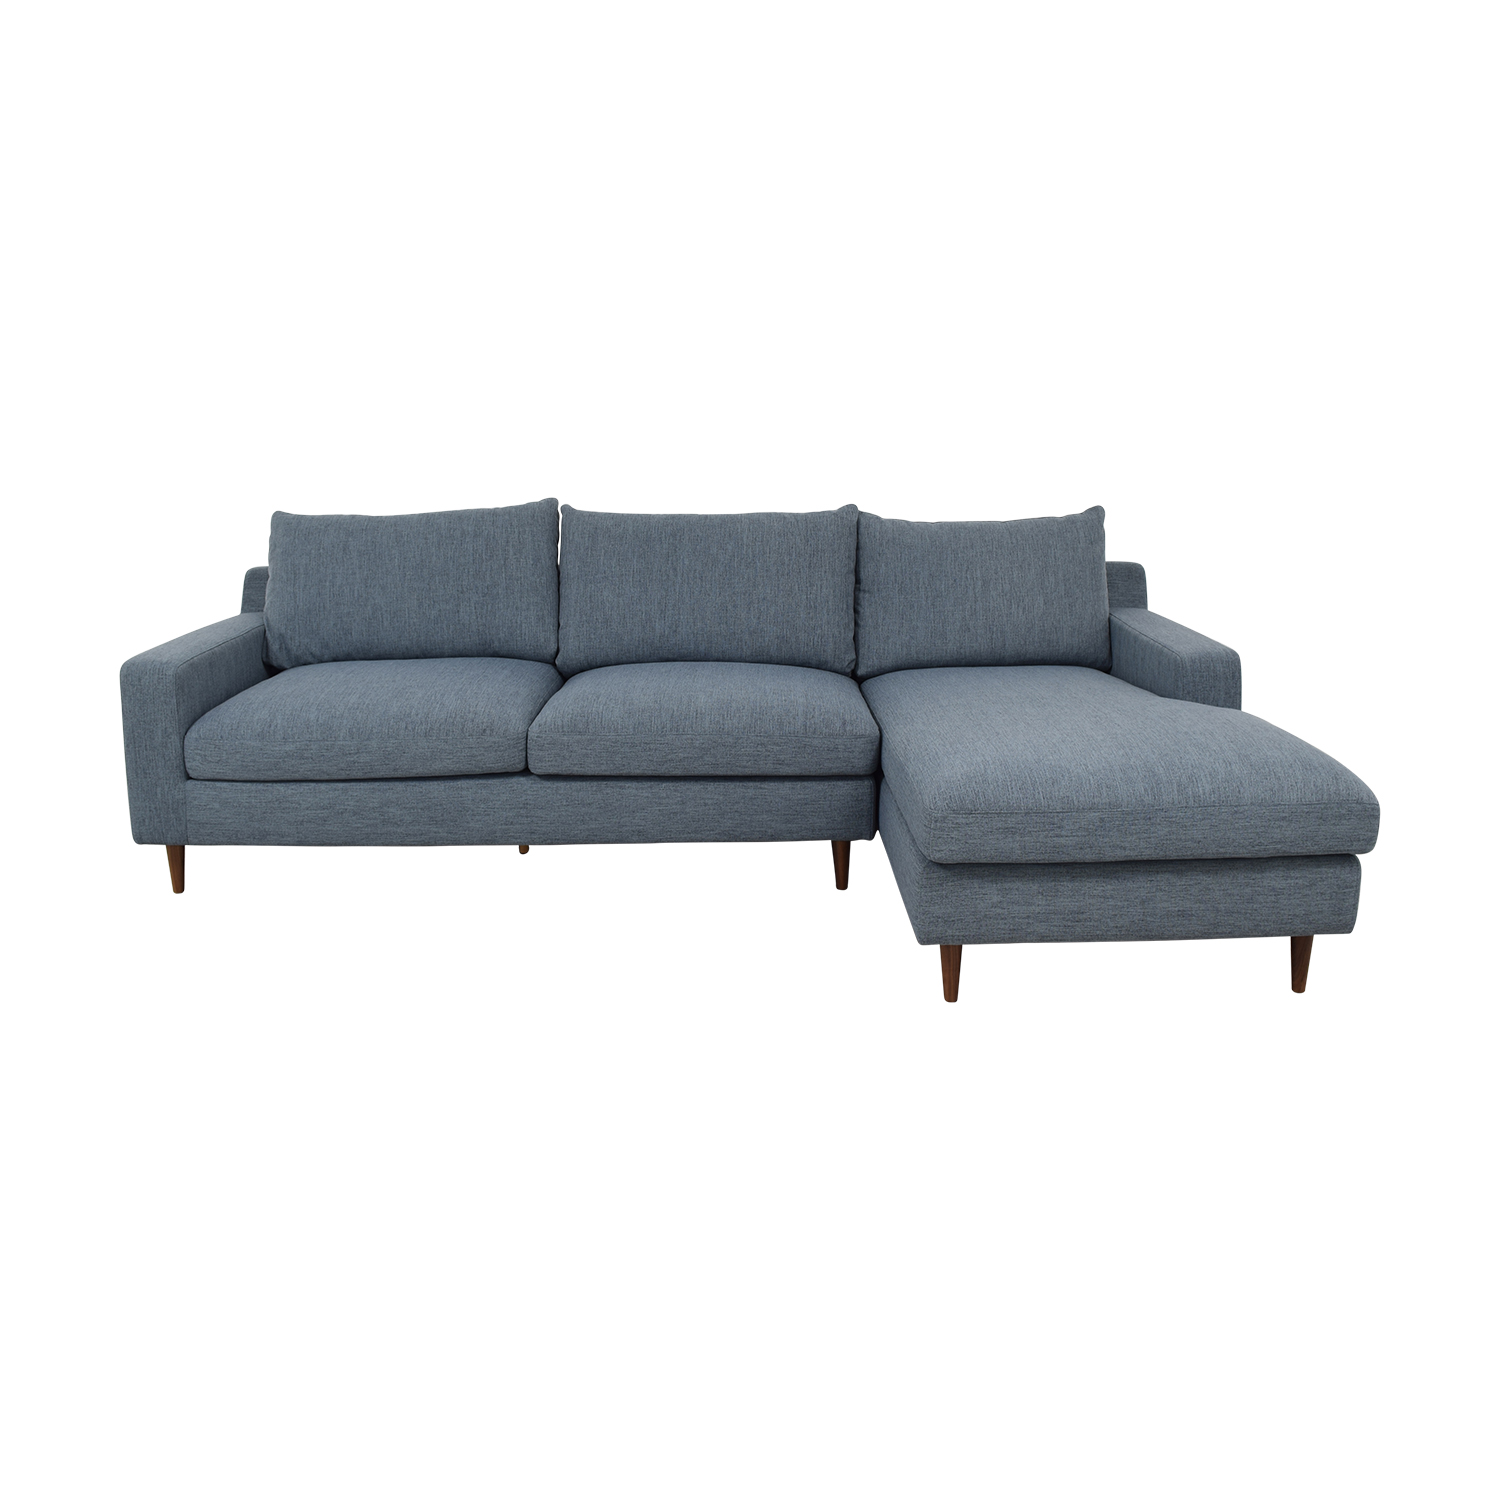 Interior Define Sloan Left Chaise Sectional Sofa